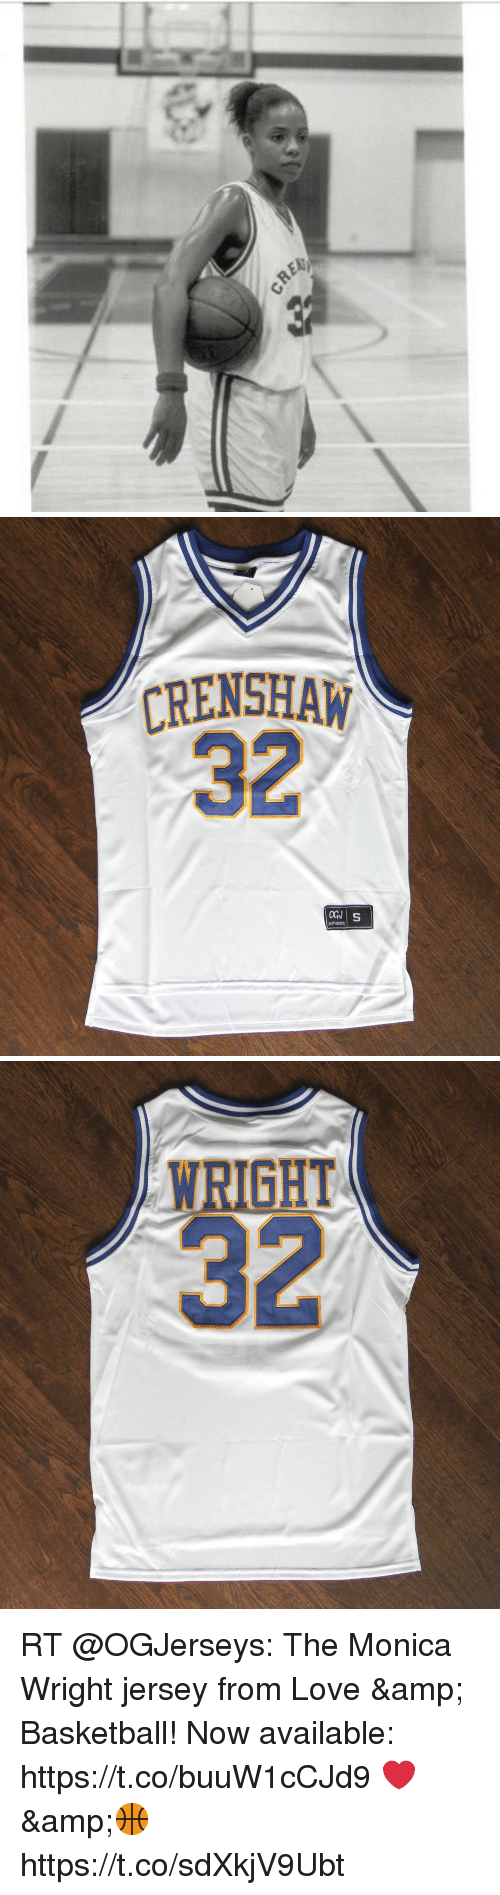 CRENSHAW 32 AUTHENTC WRIGHT 32 RT the Monica Wright Jersey From Love ... 5b64e3c9bb